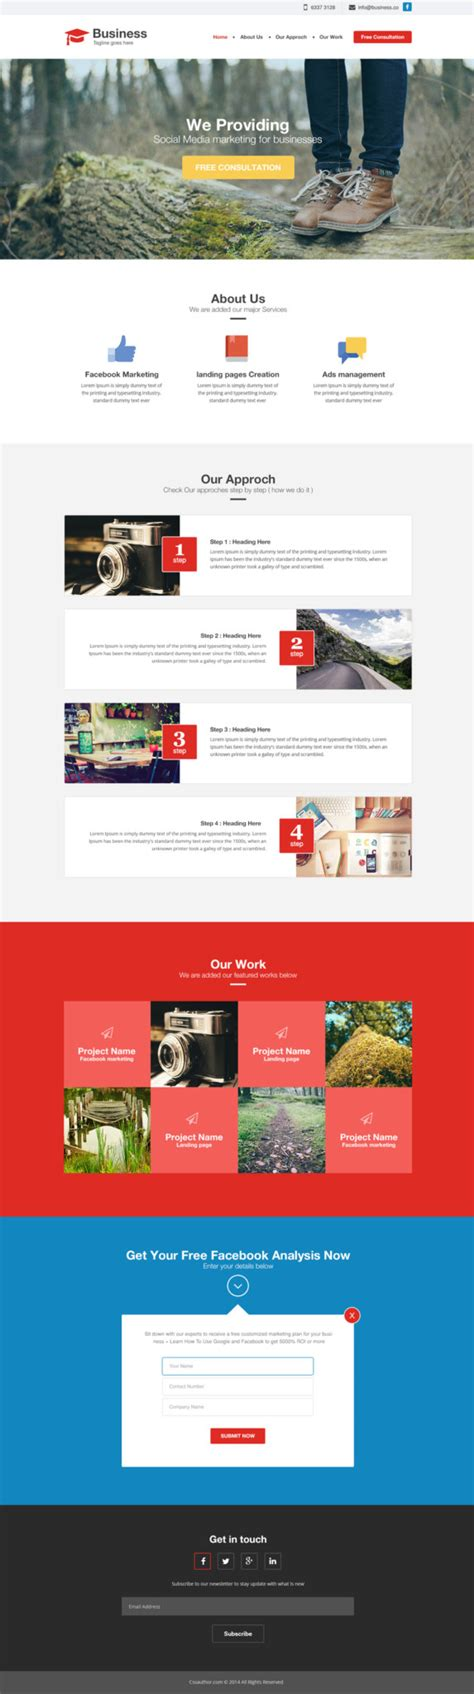 best free website templates for business top 3 free agency business website template psd in july